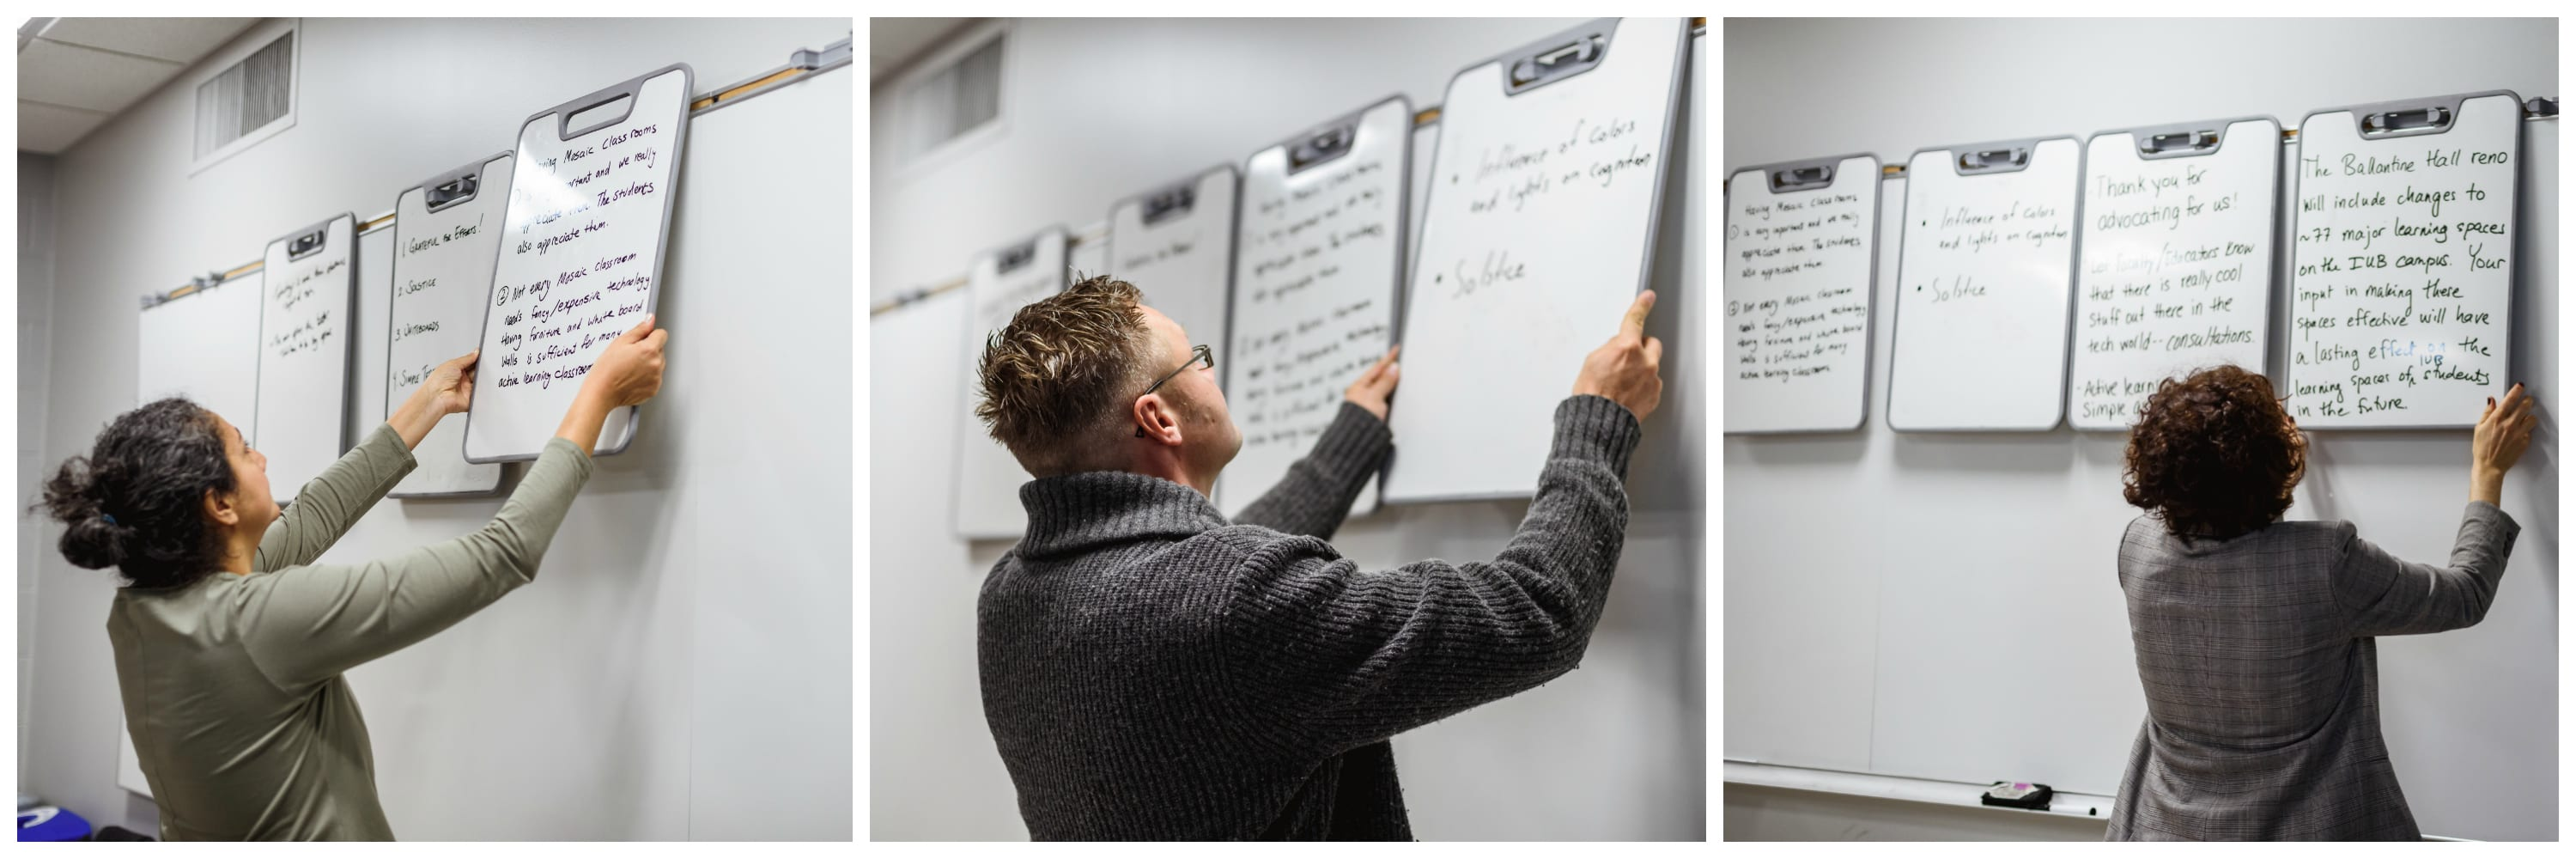 Mosaic Faculty Fellows hang verb boards with feedback along wall for all to see